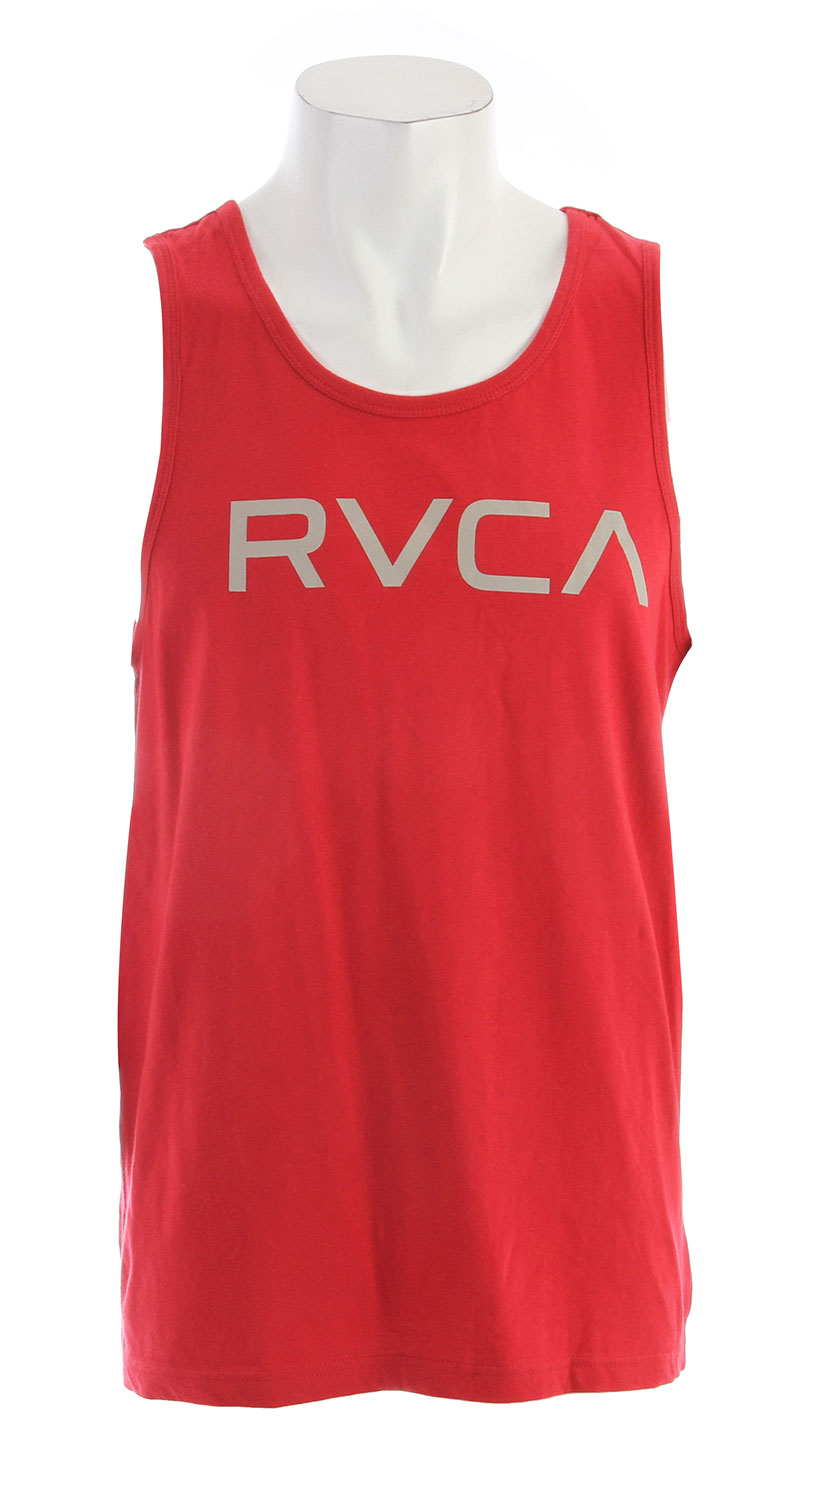 Surf Key Features of the RVCA Big RVCA Standard Tank: BLK, NVY WHT: 100% Cotton ATH: 90% Cotton/10% Polyester Heavier weight short sleeve crew tee Screen print front and screened inside neck - $22.00